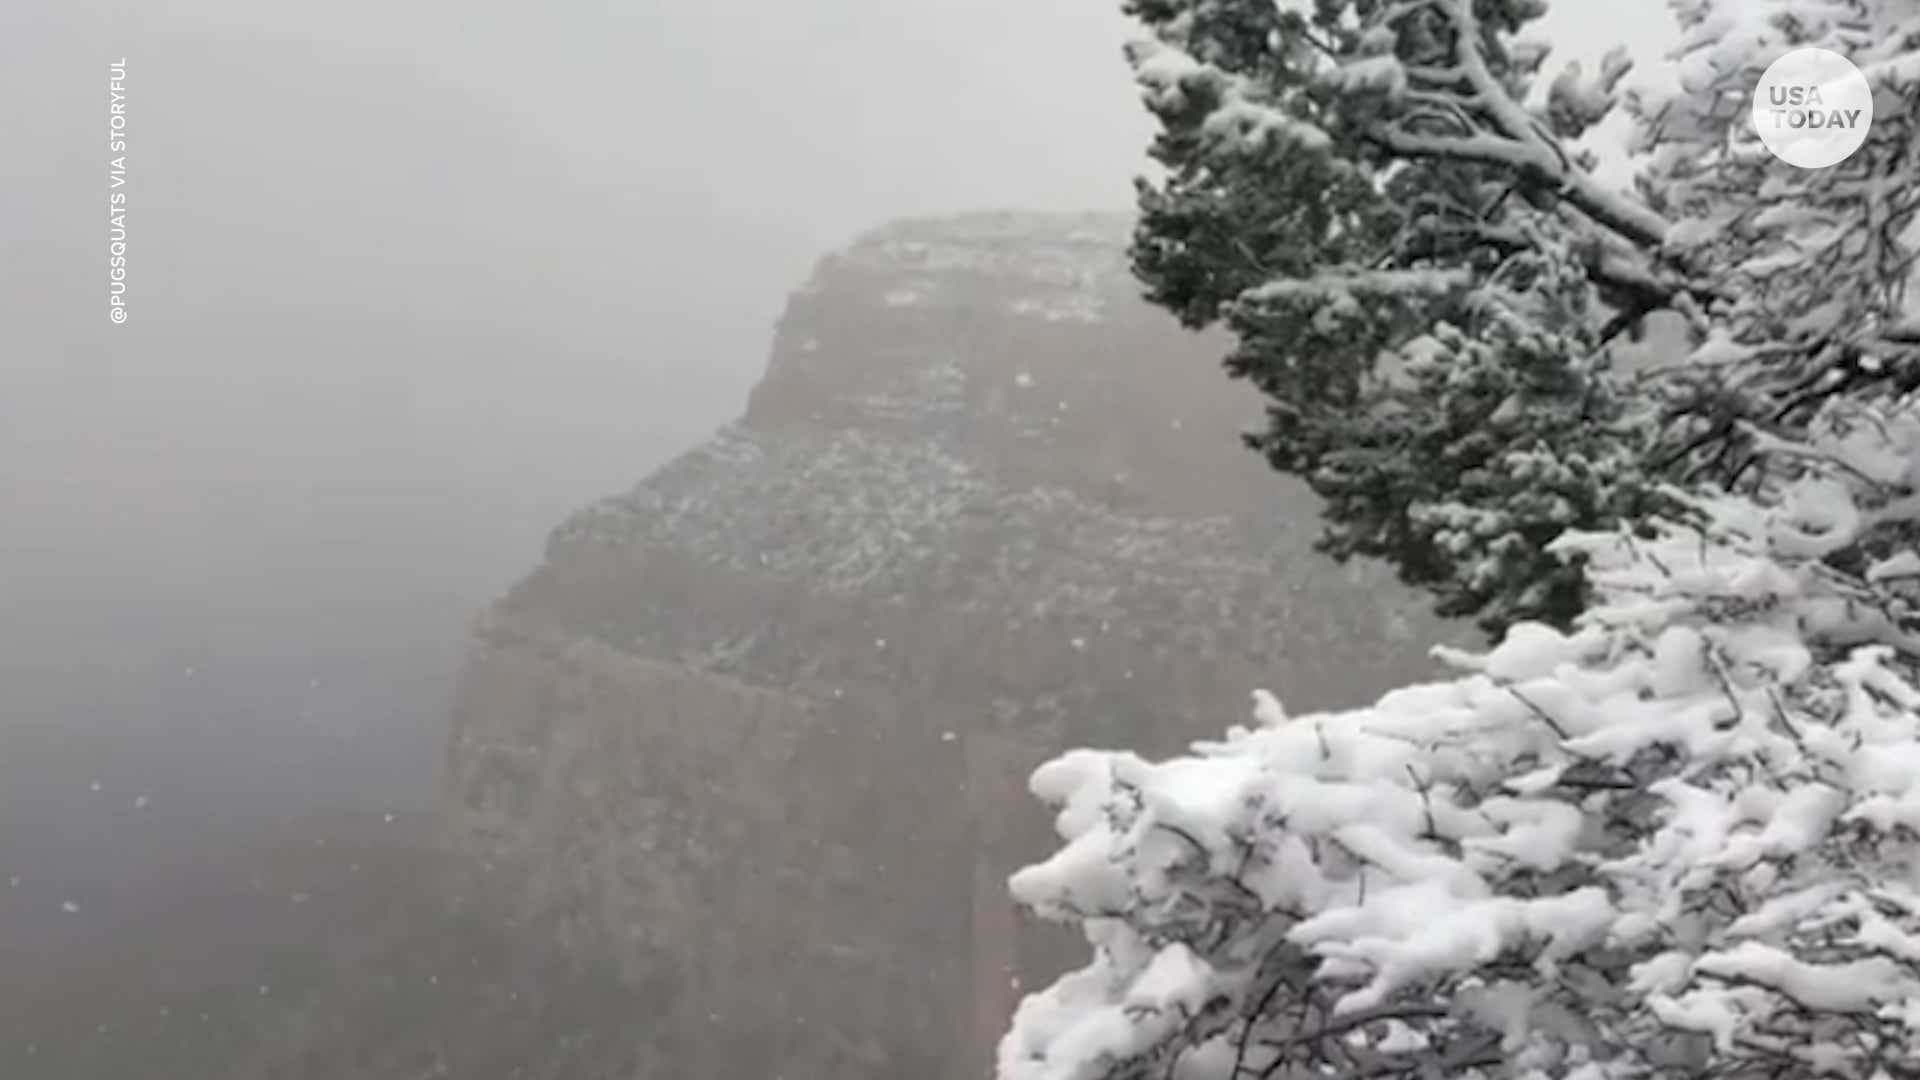 Several Inches Of Snow Dusts Trees Rocks In Grand Canyon